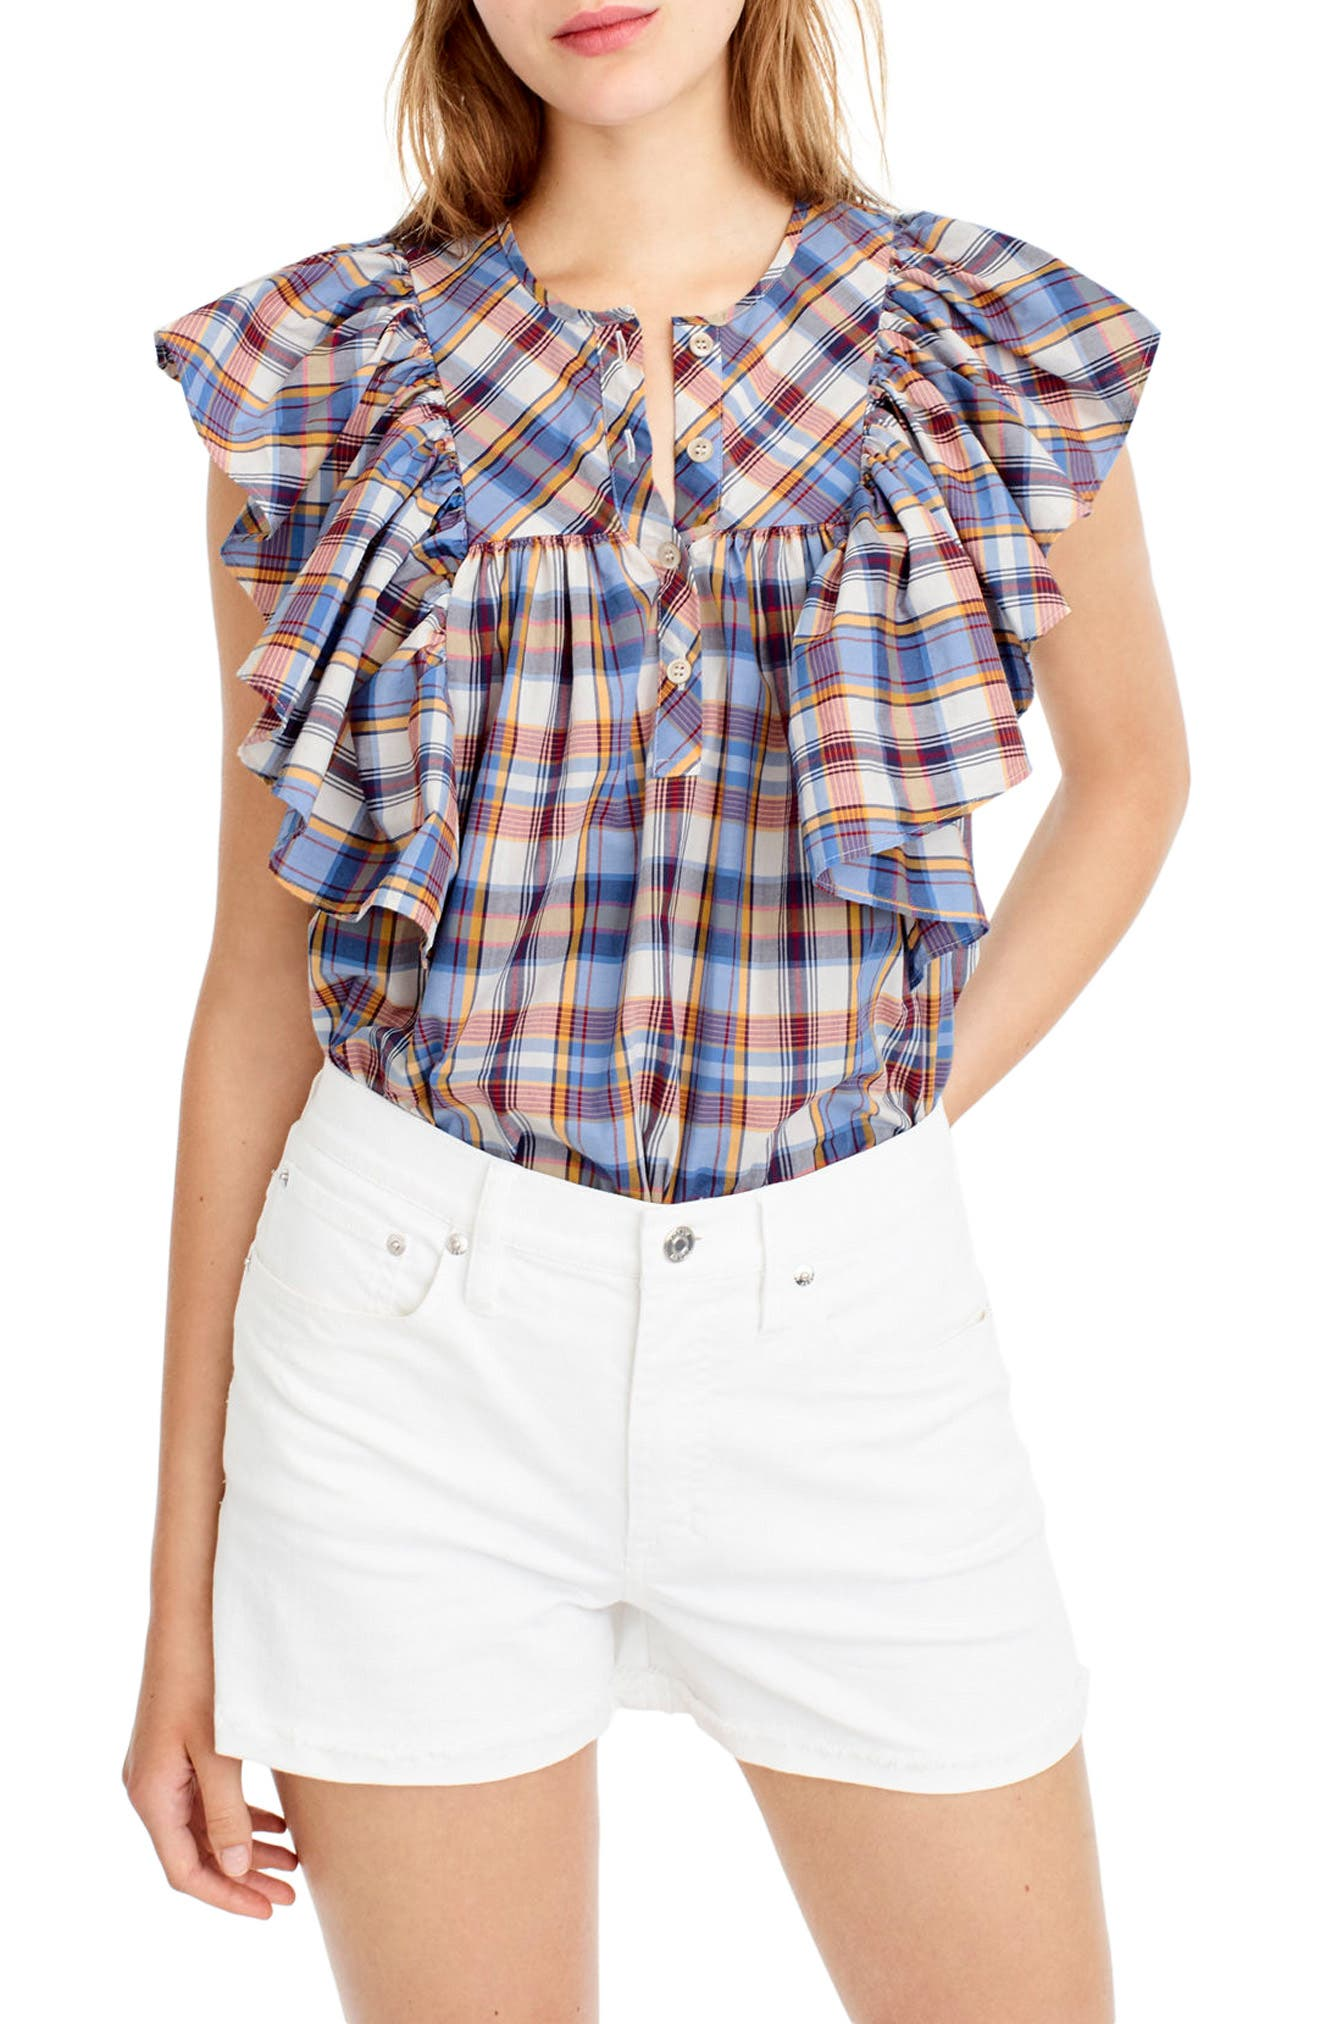 Alternate Image 1 Selected - J.Crew Danny Hula Plaid Top (Regular & Petite)